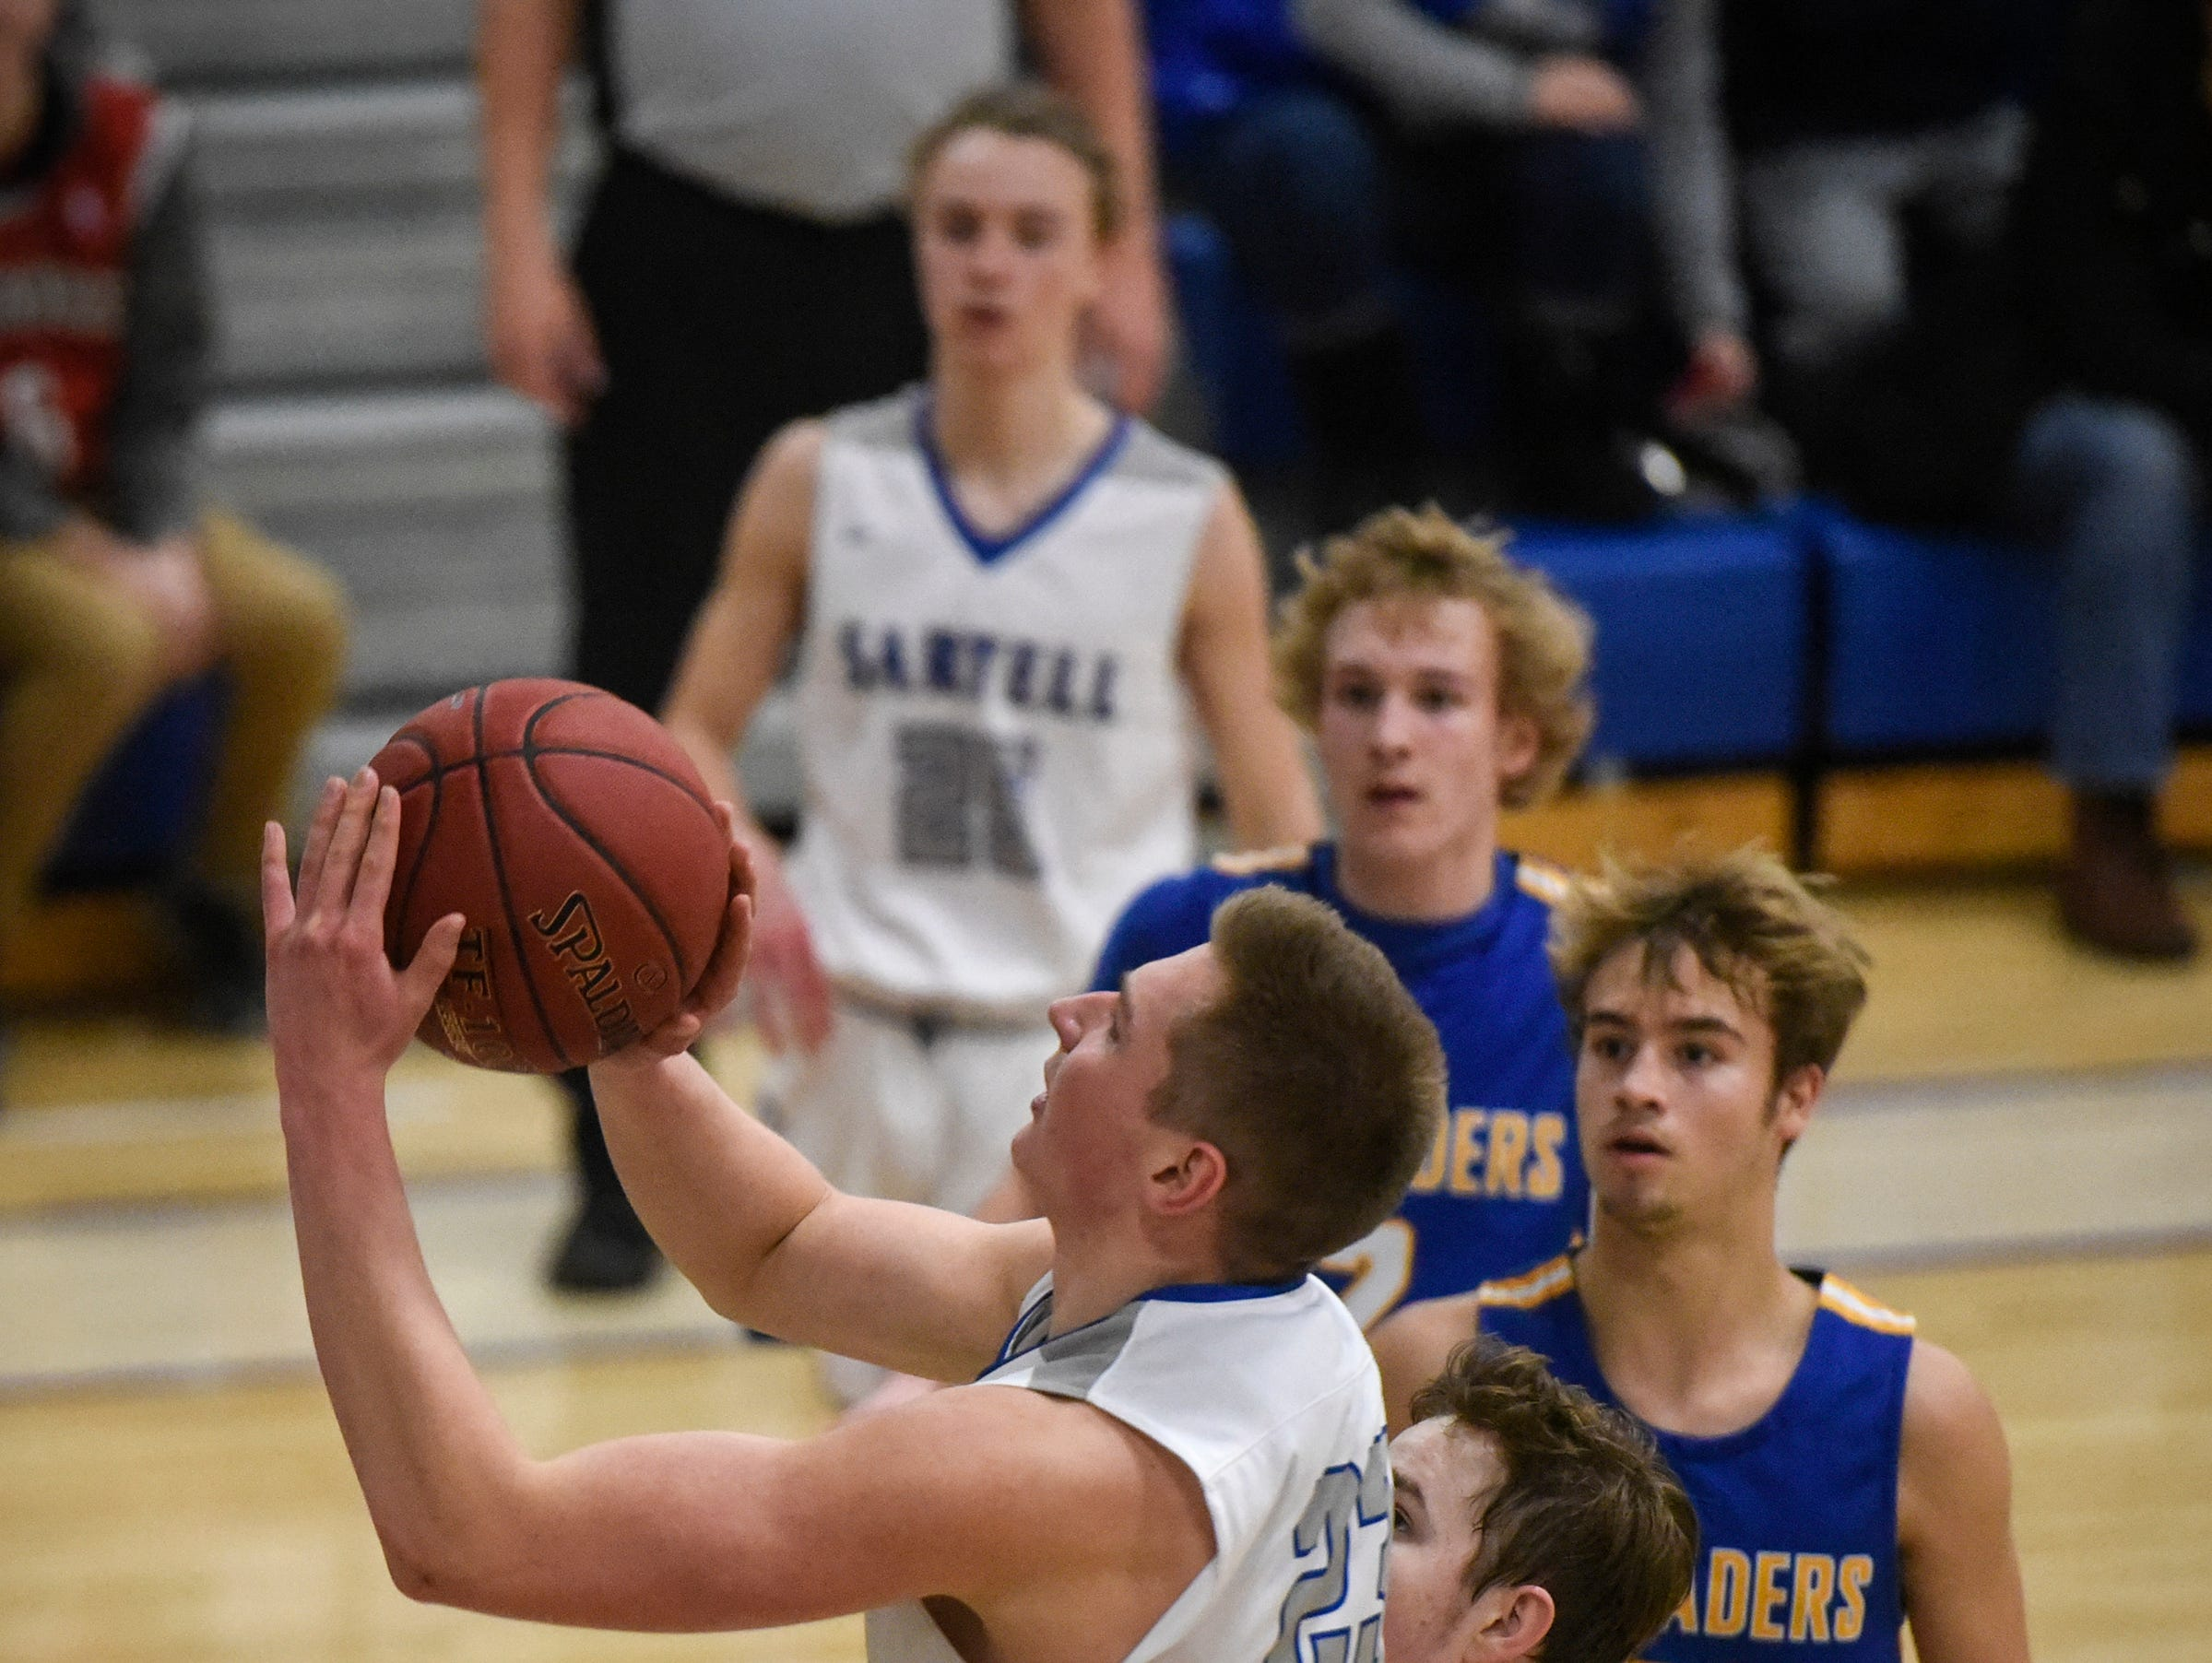 Sartell's Thomas Gieske puts up a shot during the game Tuesday, Jan. 8, at Cathedral High School in St. Cloud.